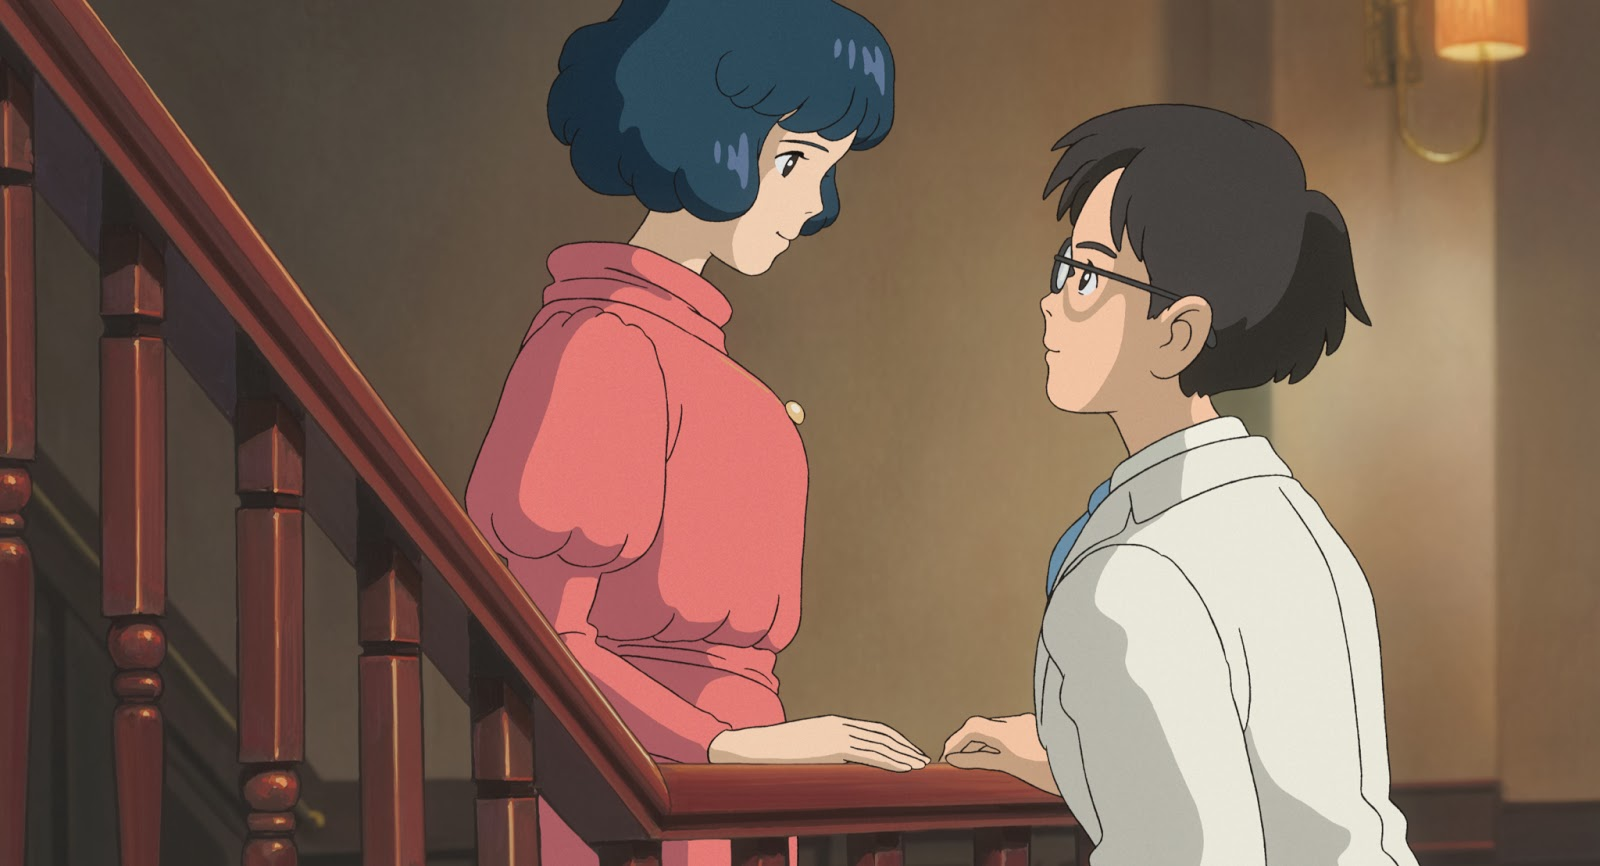 Reel Talk Online The Oscar Nominated Animated Film The Wind Rises Is A Beautiful And Touching Swan Song From Hayao Miyazaki